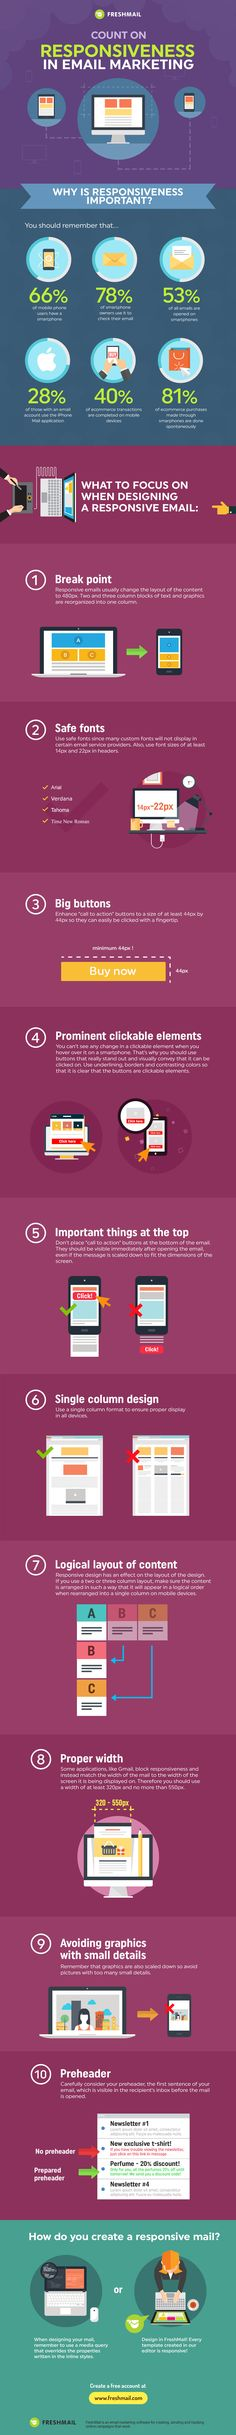 Count on responsiveness in email marketing http://fleetheratrace.blogspot.co.uk/2015/05/how-email-marketing-and-seo-go-hand-in-hand.html #email #marketing #emailmarketing tips and tricks #infographic